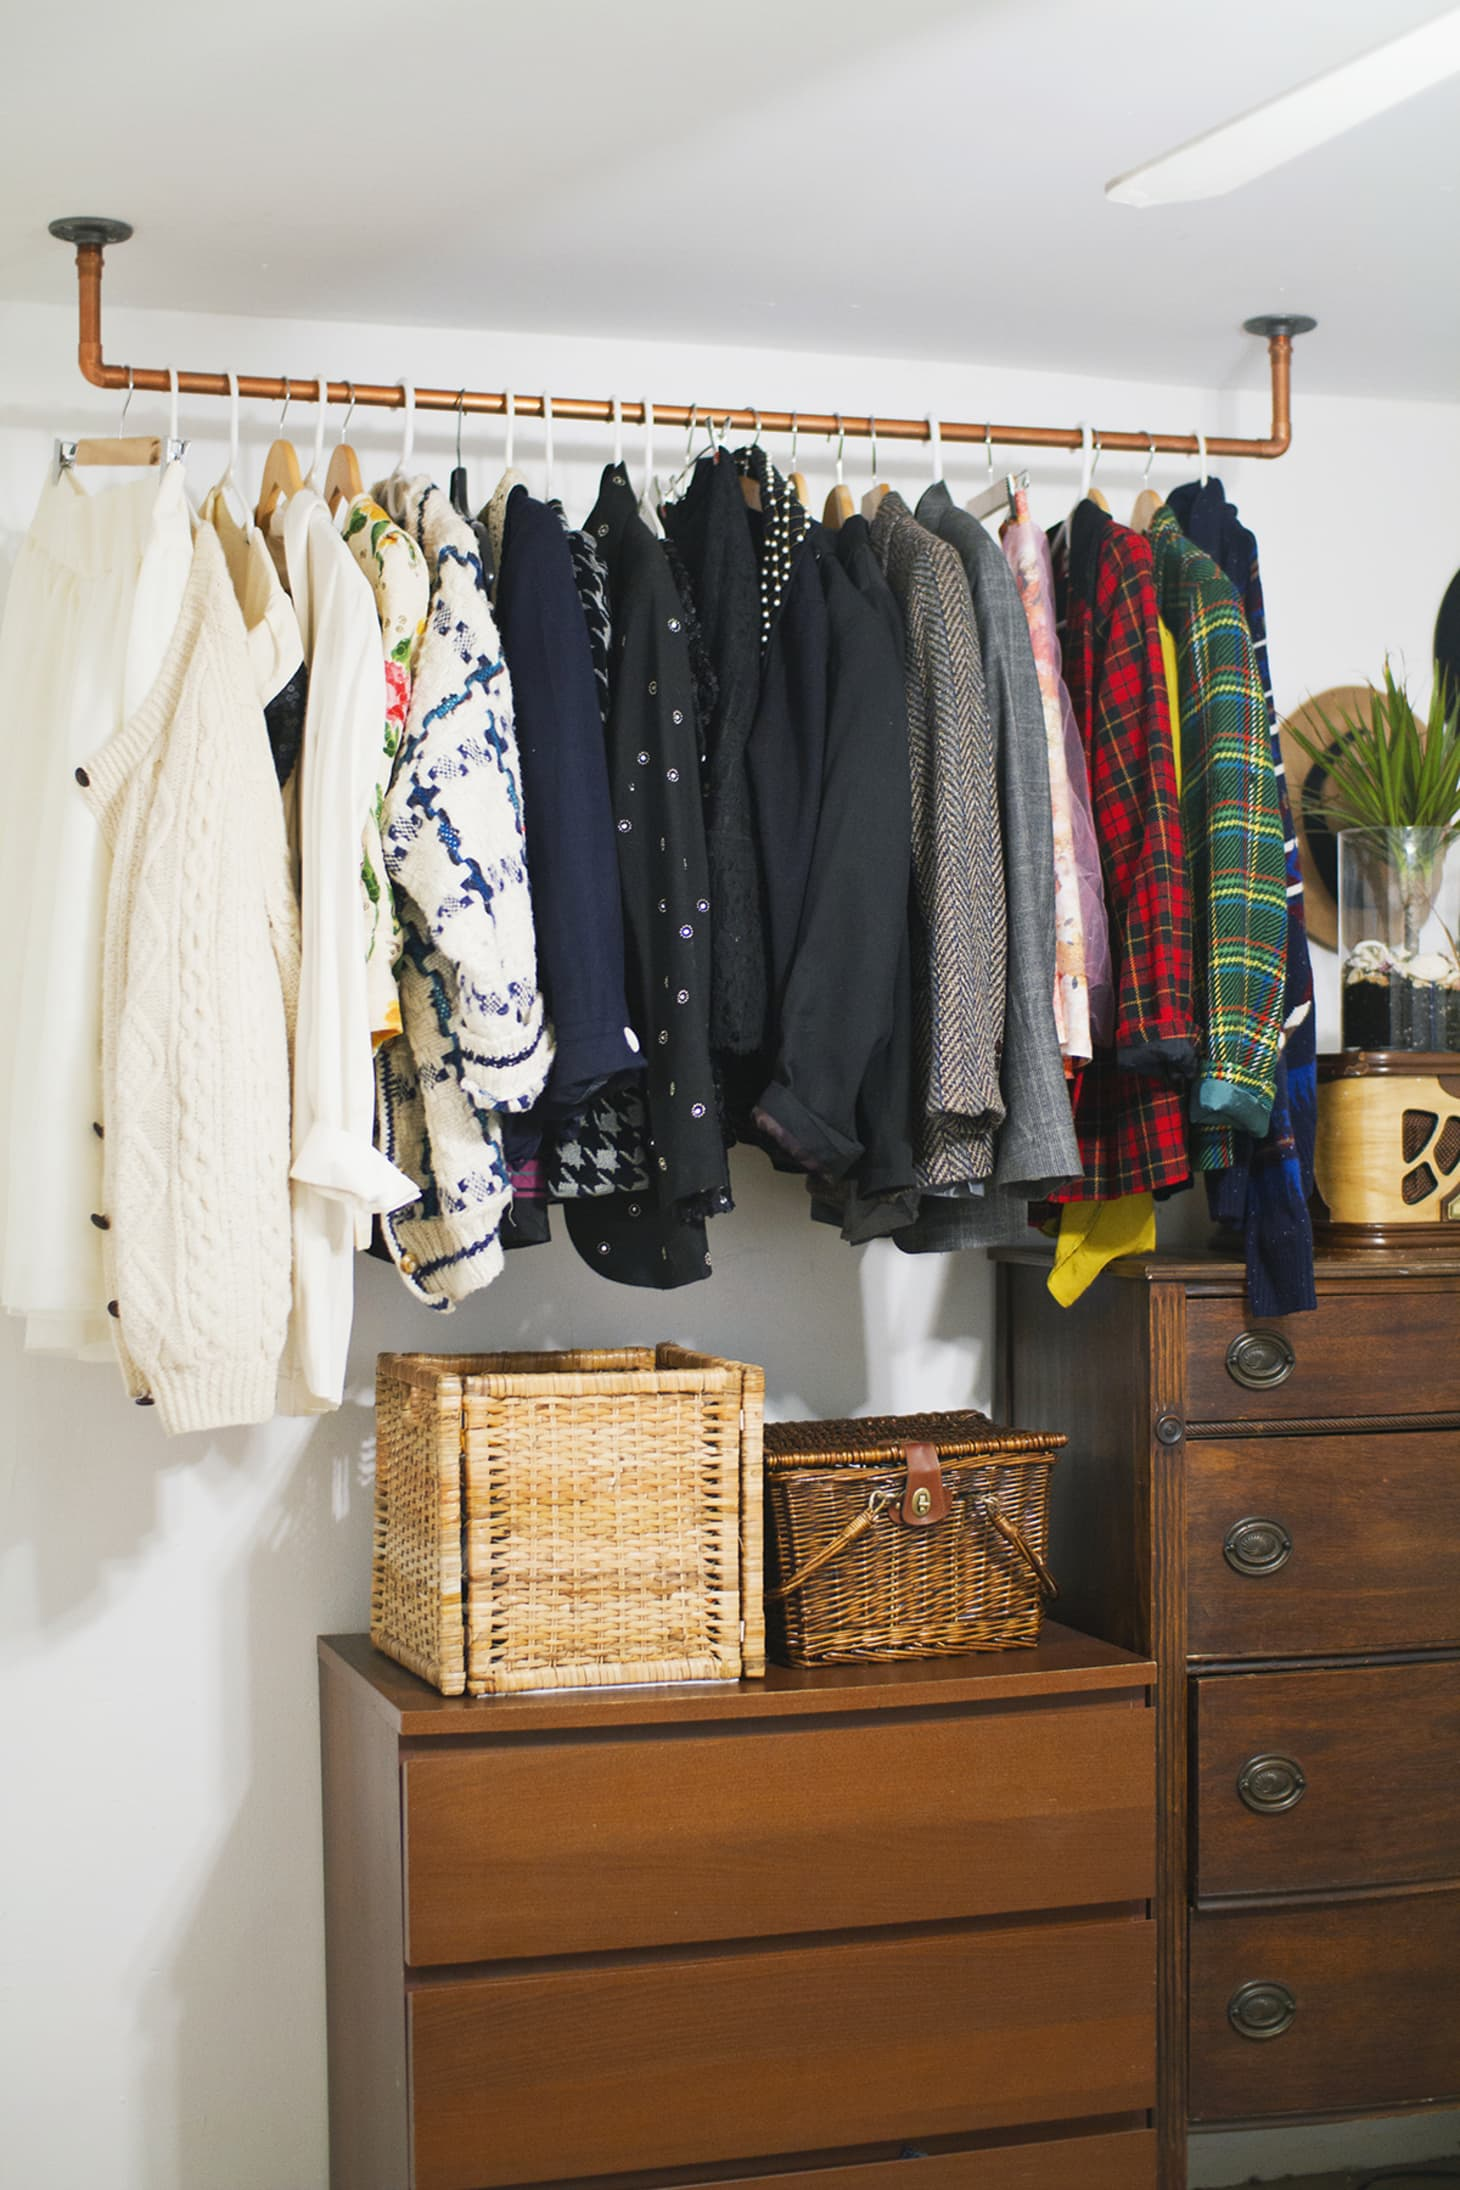 Hanging Closet Organizer Options To Buy Or Diy Apartment